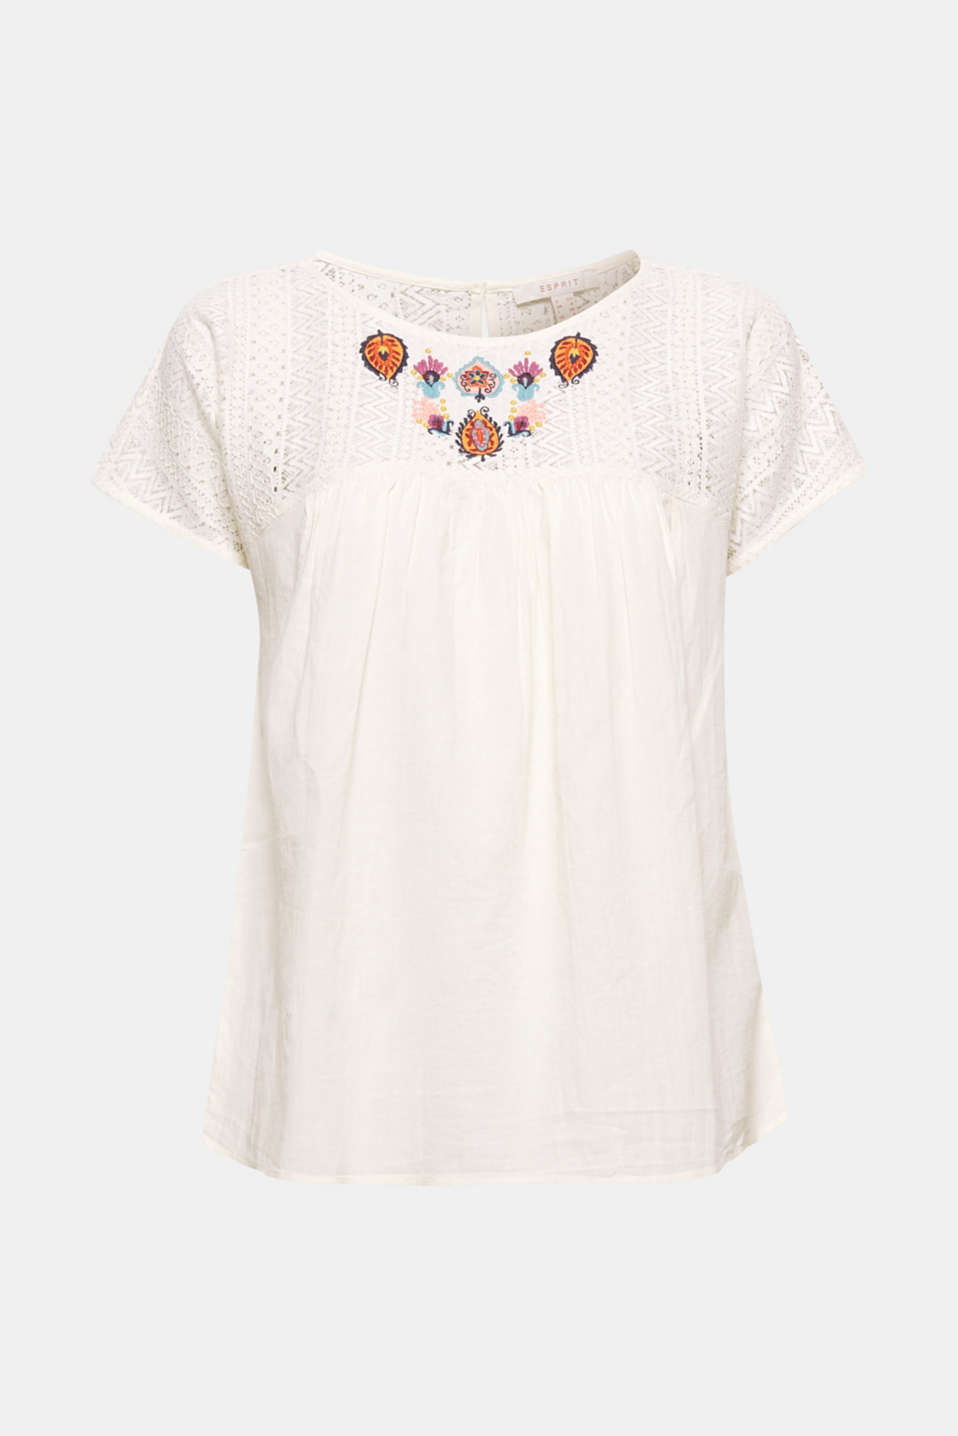 Delicate lace and colourful, elaborate embroidery - what more does a lightweight summer blouse need? This blouse is crafted from premium organic cotton and features front pleats and a subtle A-line silhouette!